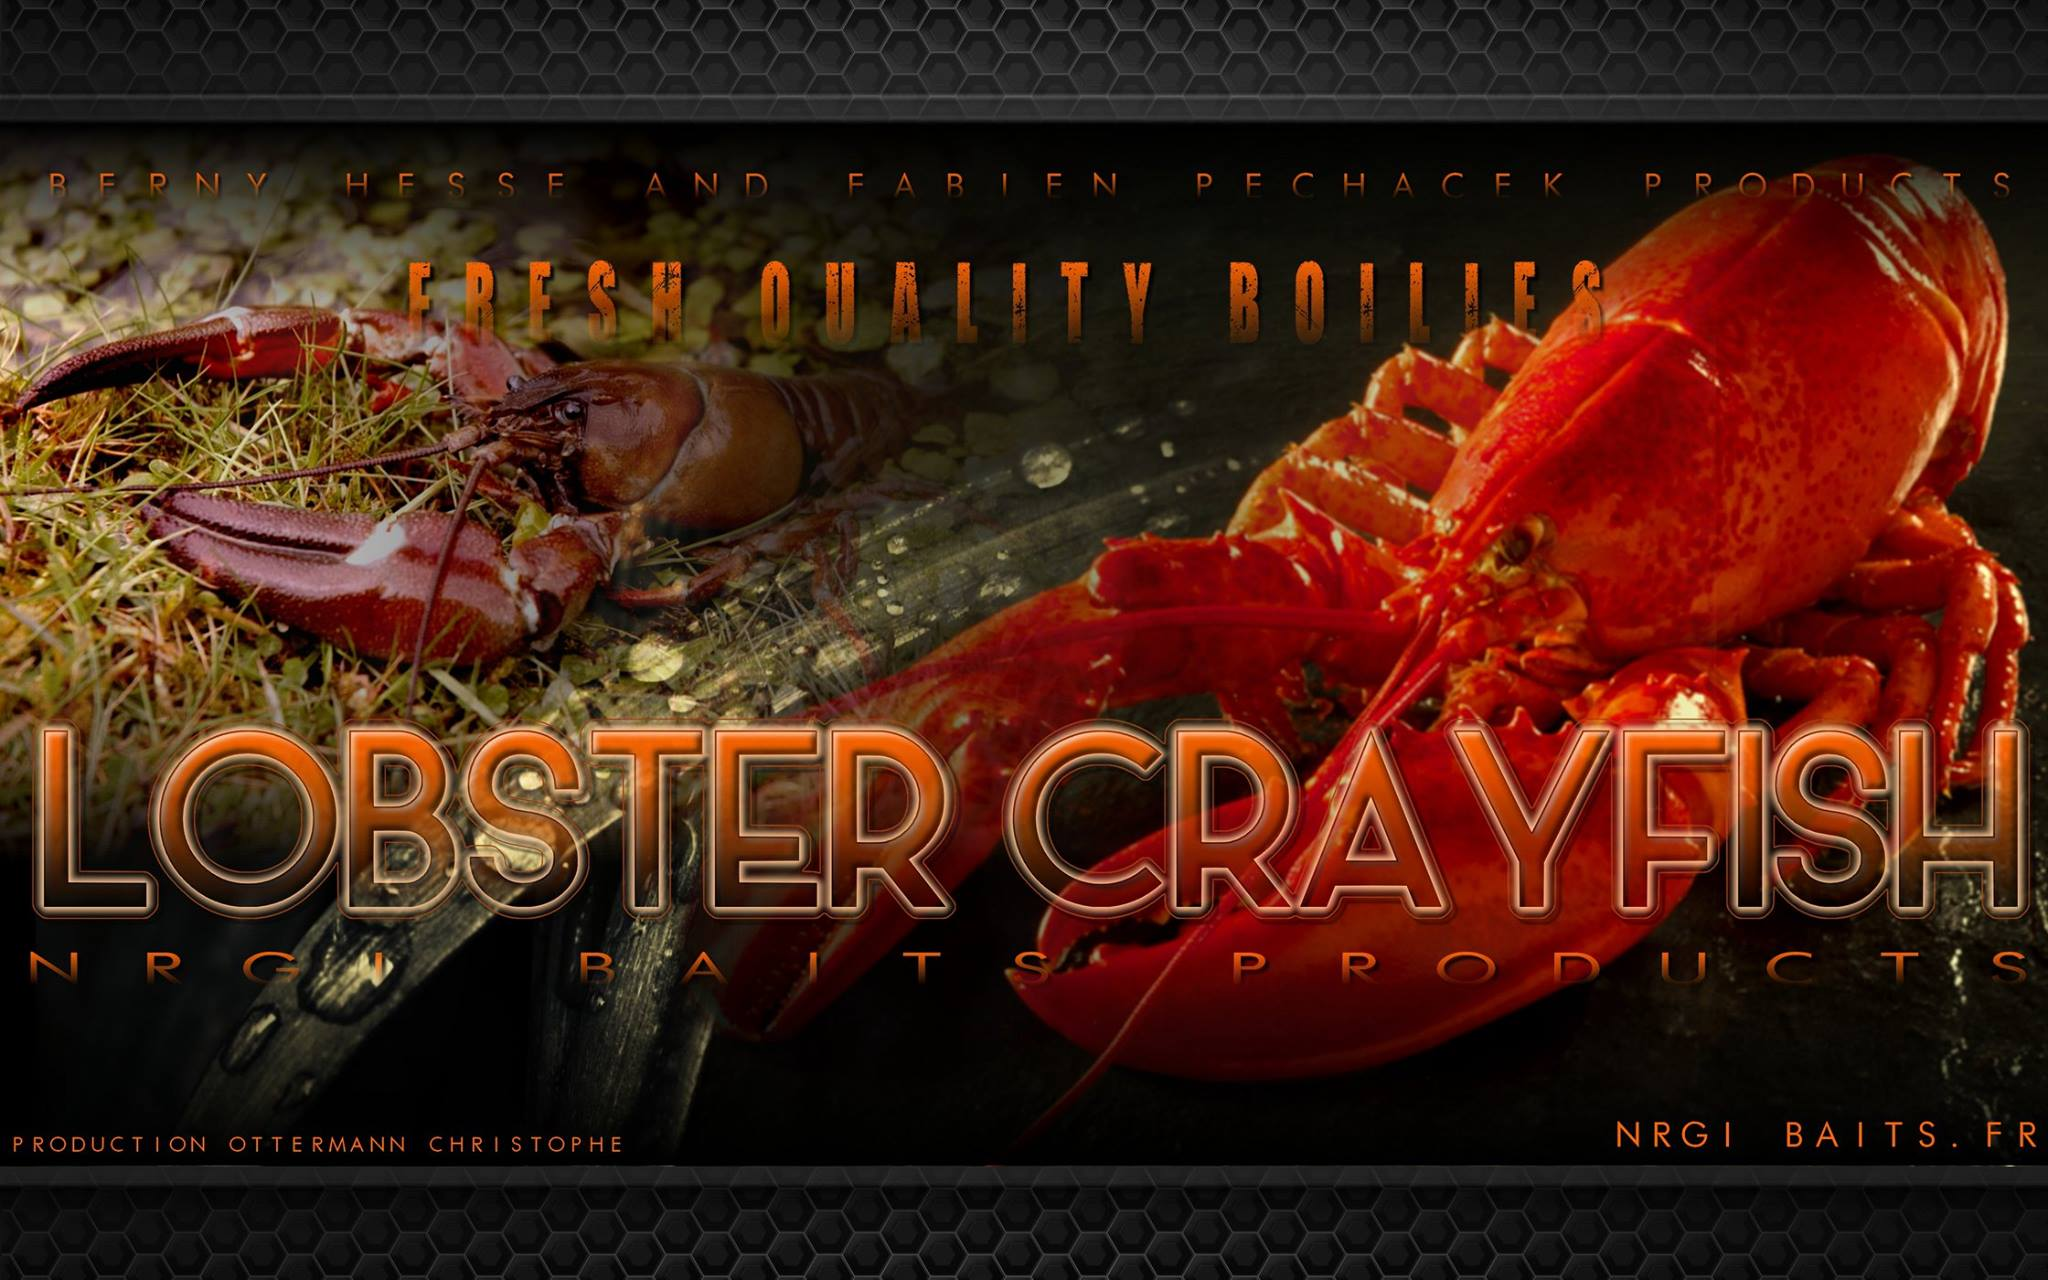 Gamme Lobster/Crayfish